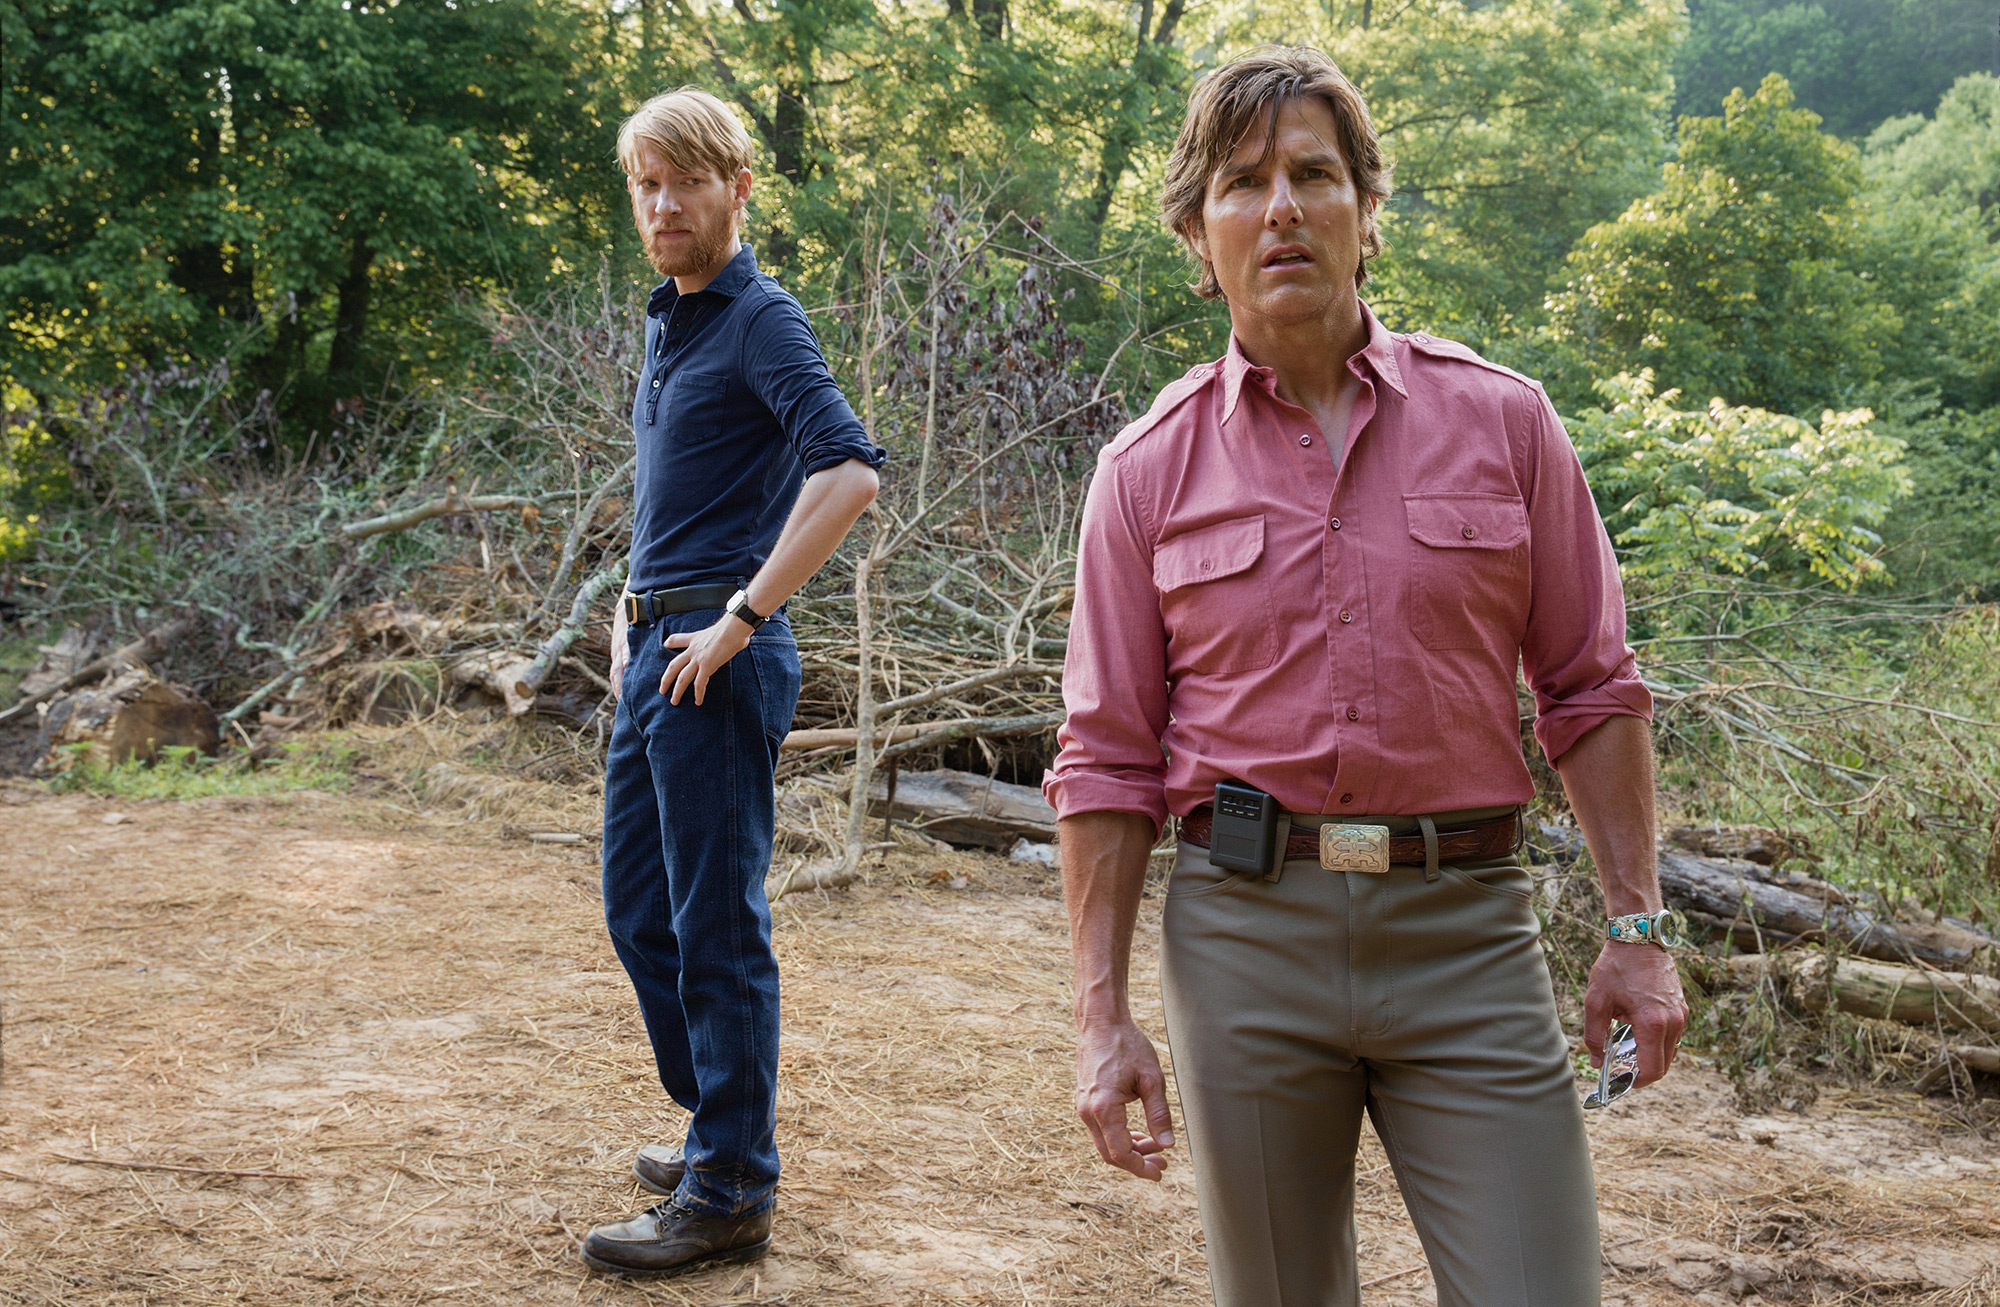 'American Made' is the best use of Tom Cruise in ages